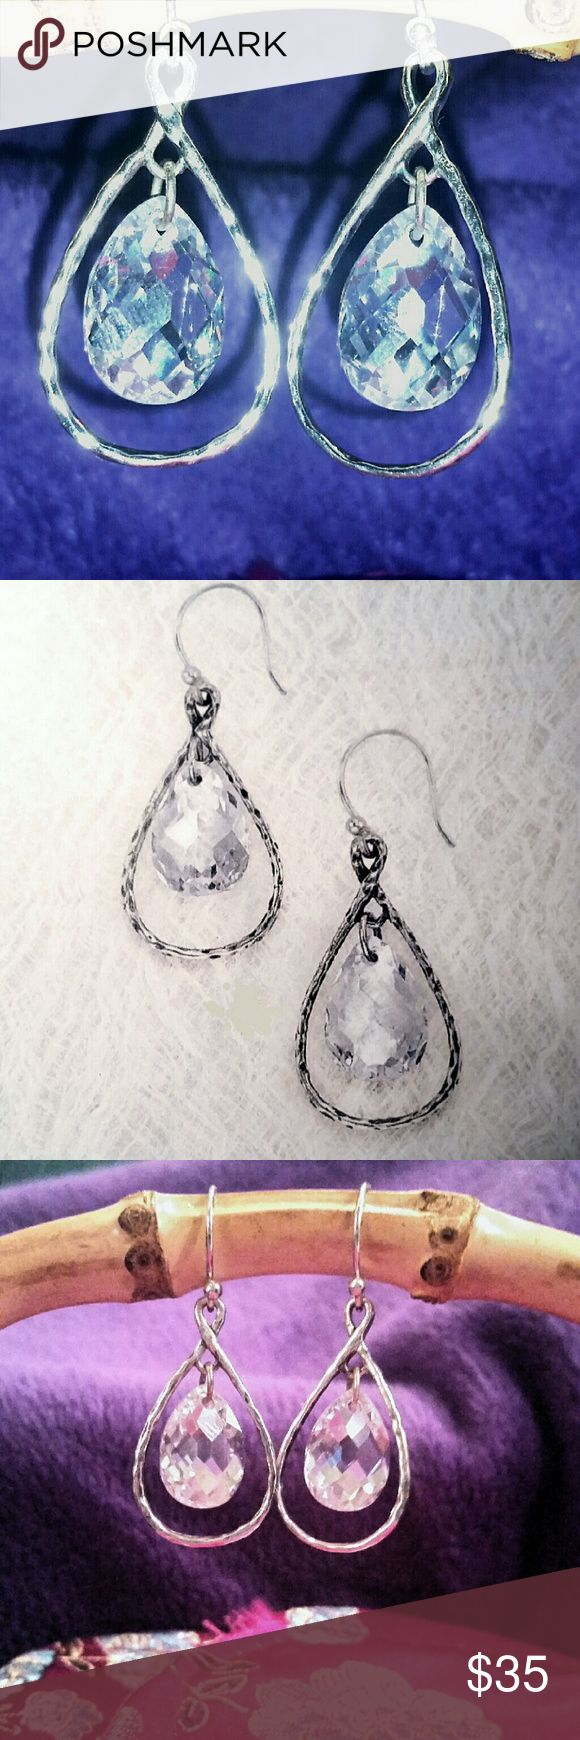 Silpada Faceted Cubic Zirconia Earrings Sterling Silver & Cubic Zirconia Illuminated earrings;  excellent condition. Silpada  Jewelry Earrings